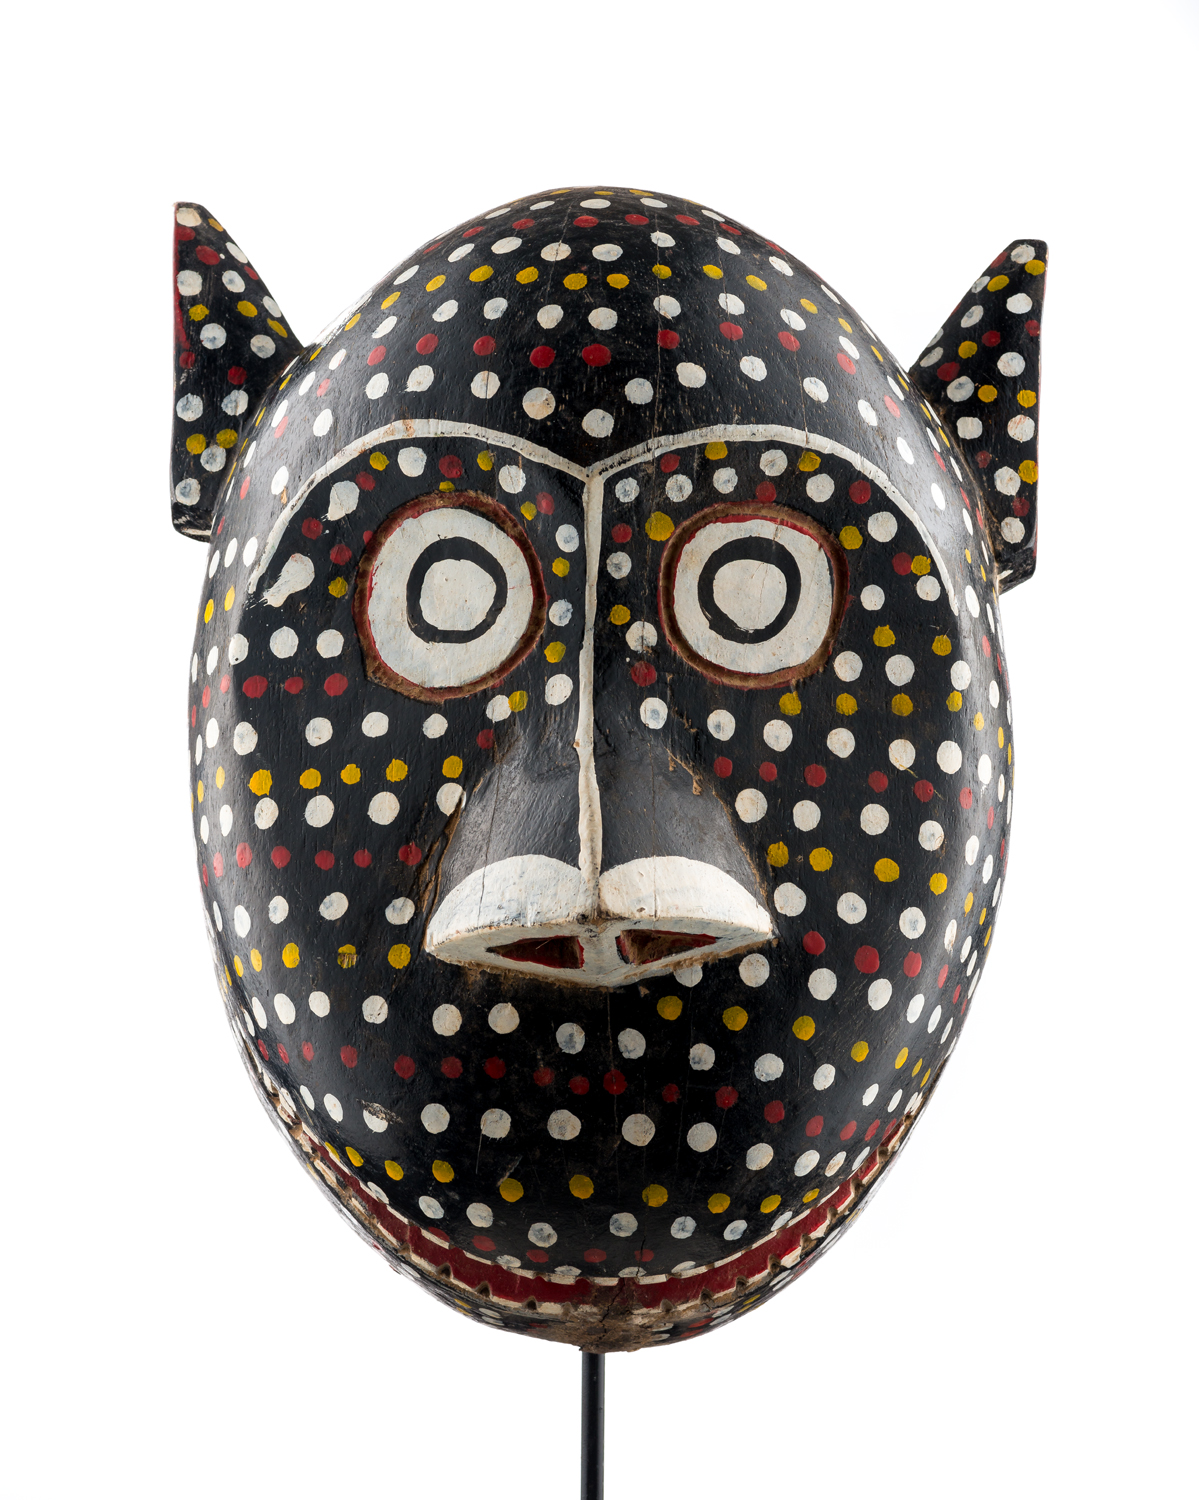 Bozo Cat Mask, Mali